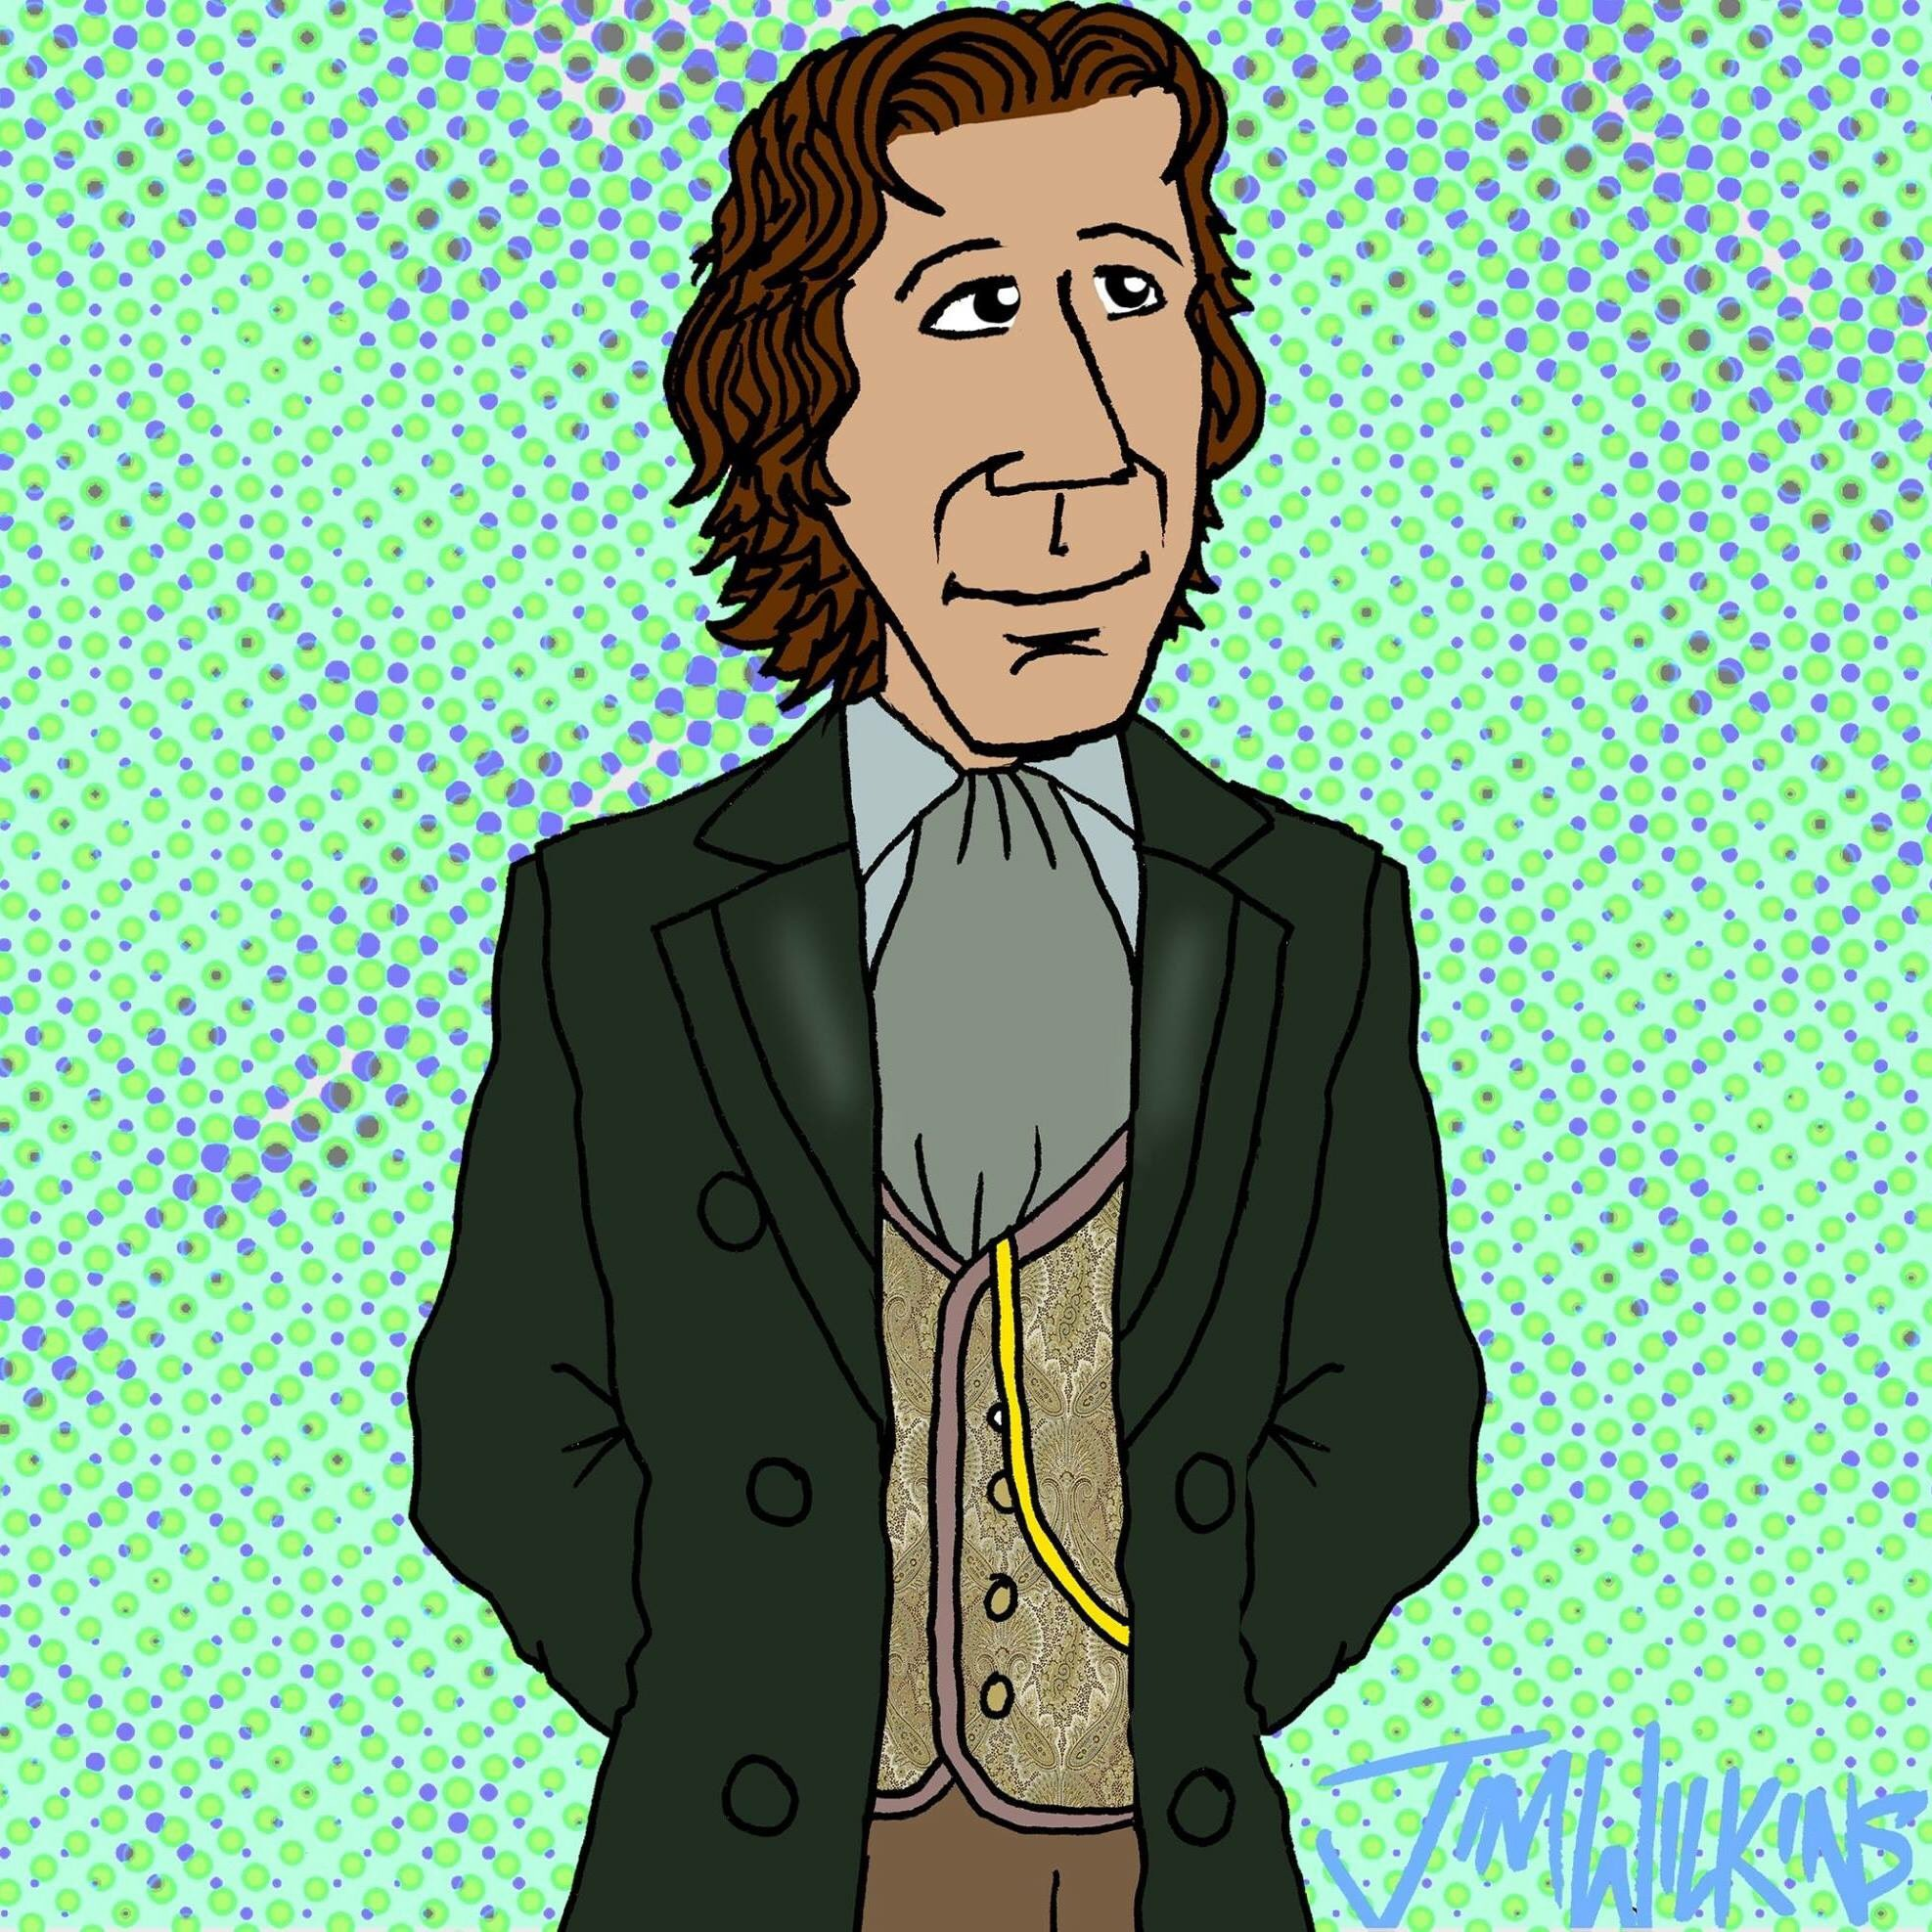 Happy birthday Paul McGann!